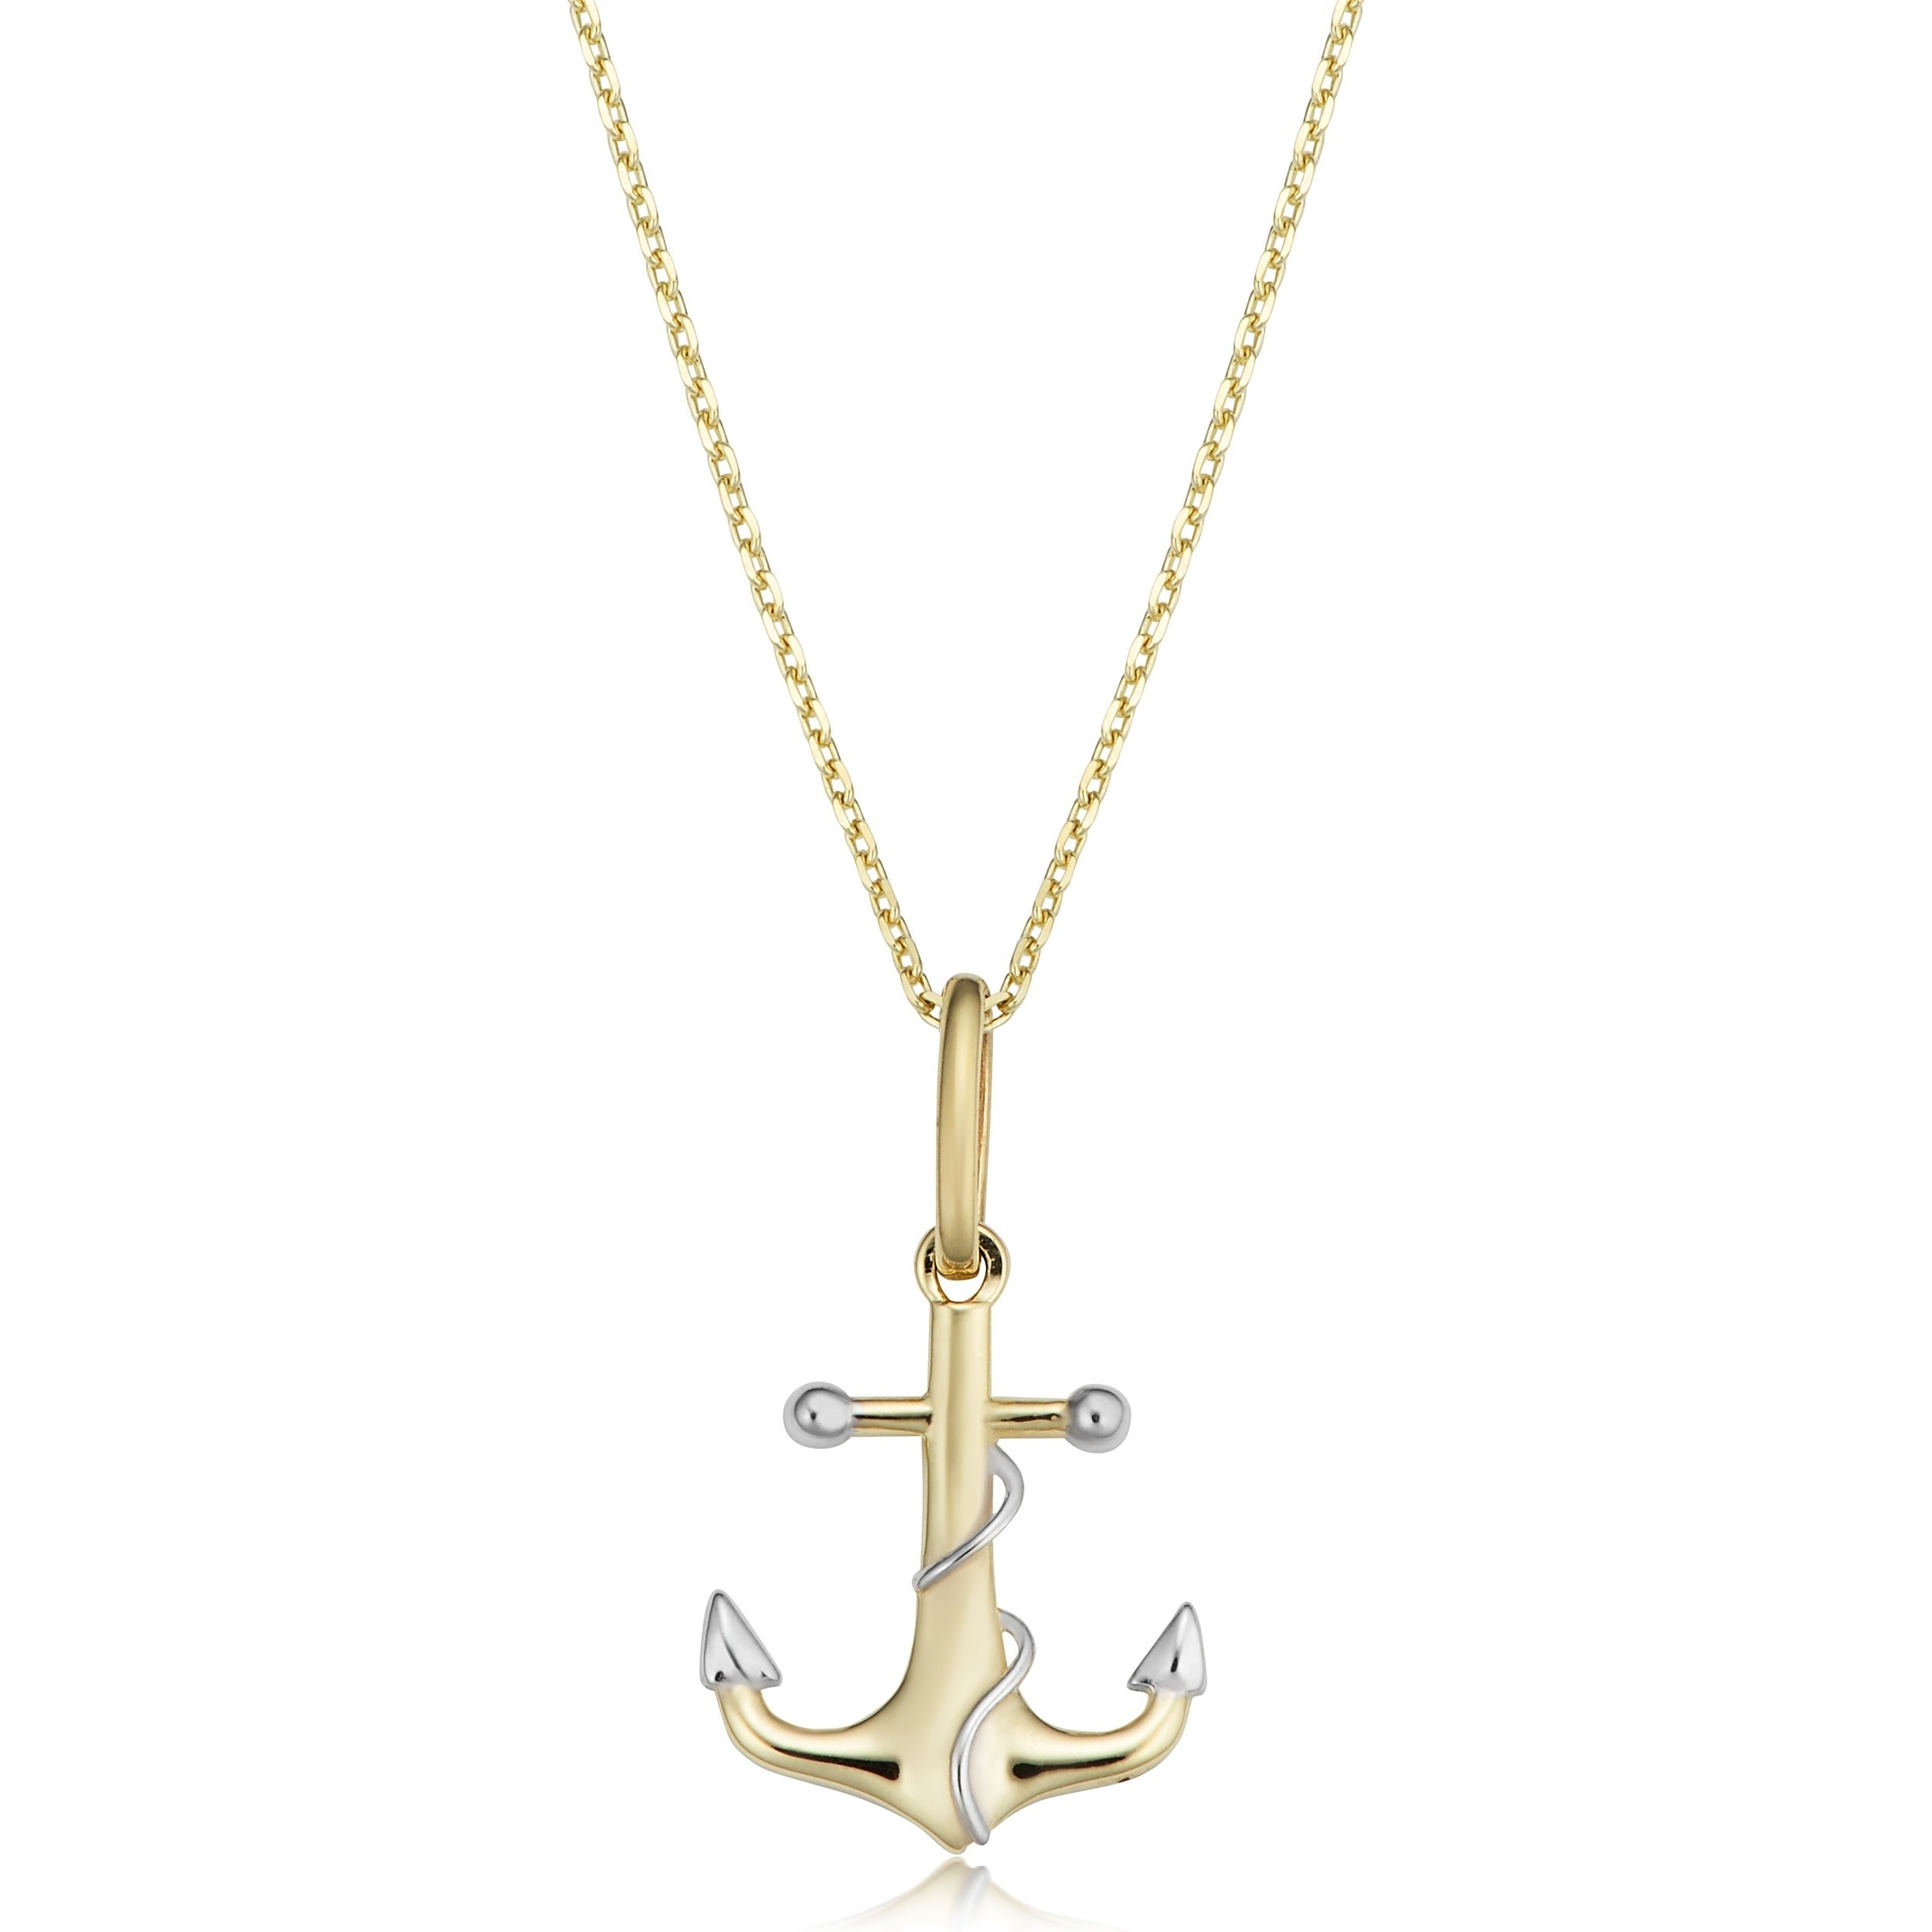 necklace jewellery yellow italy gold anchor made chain tesoro in product online yg imperia buy